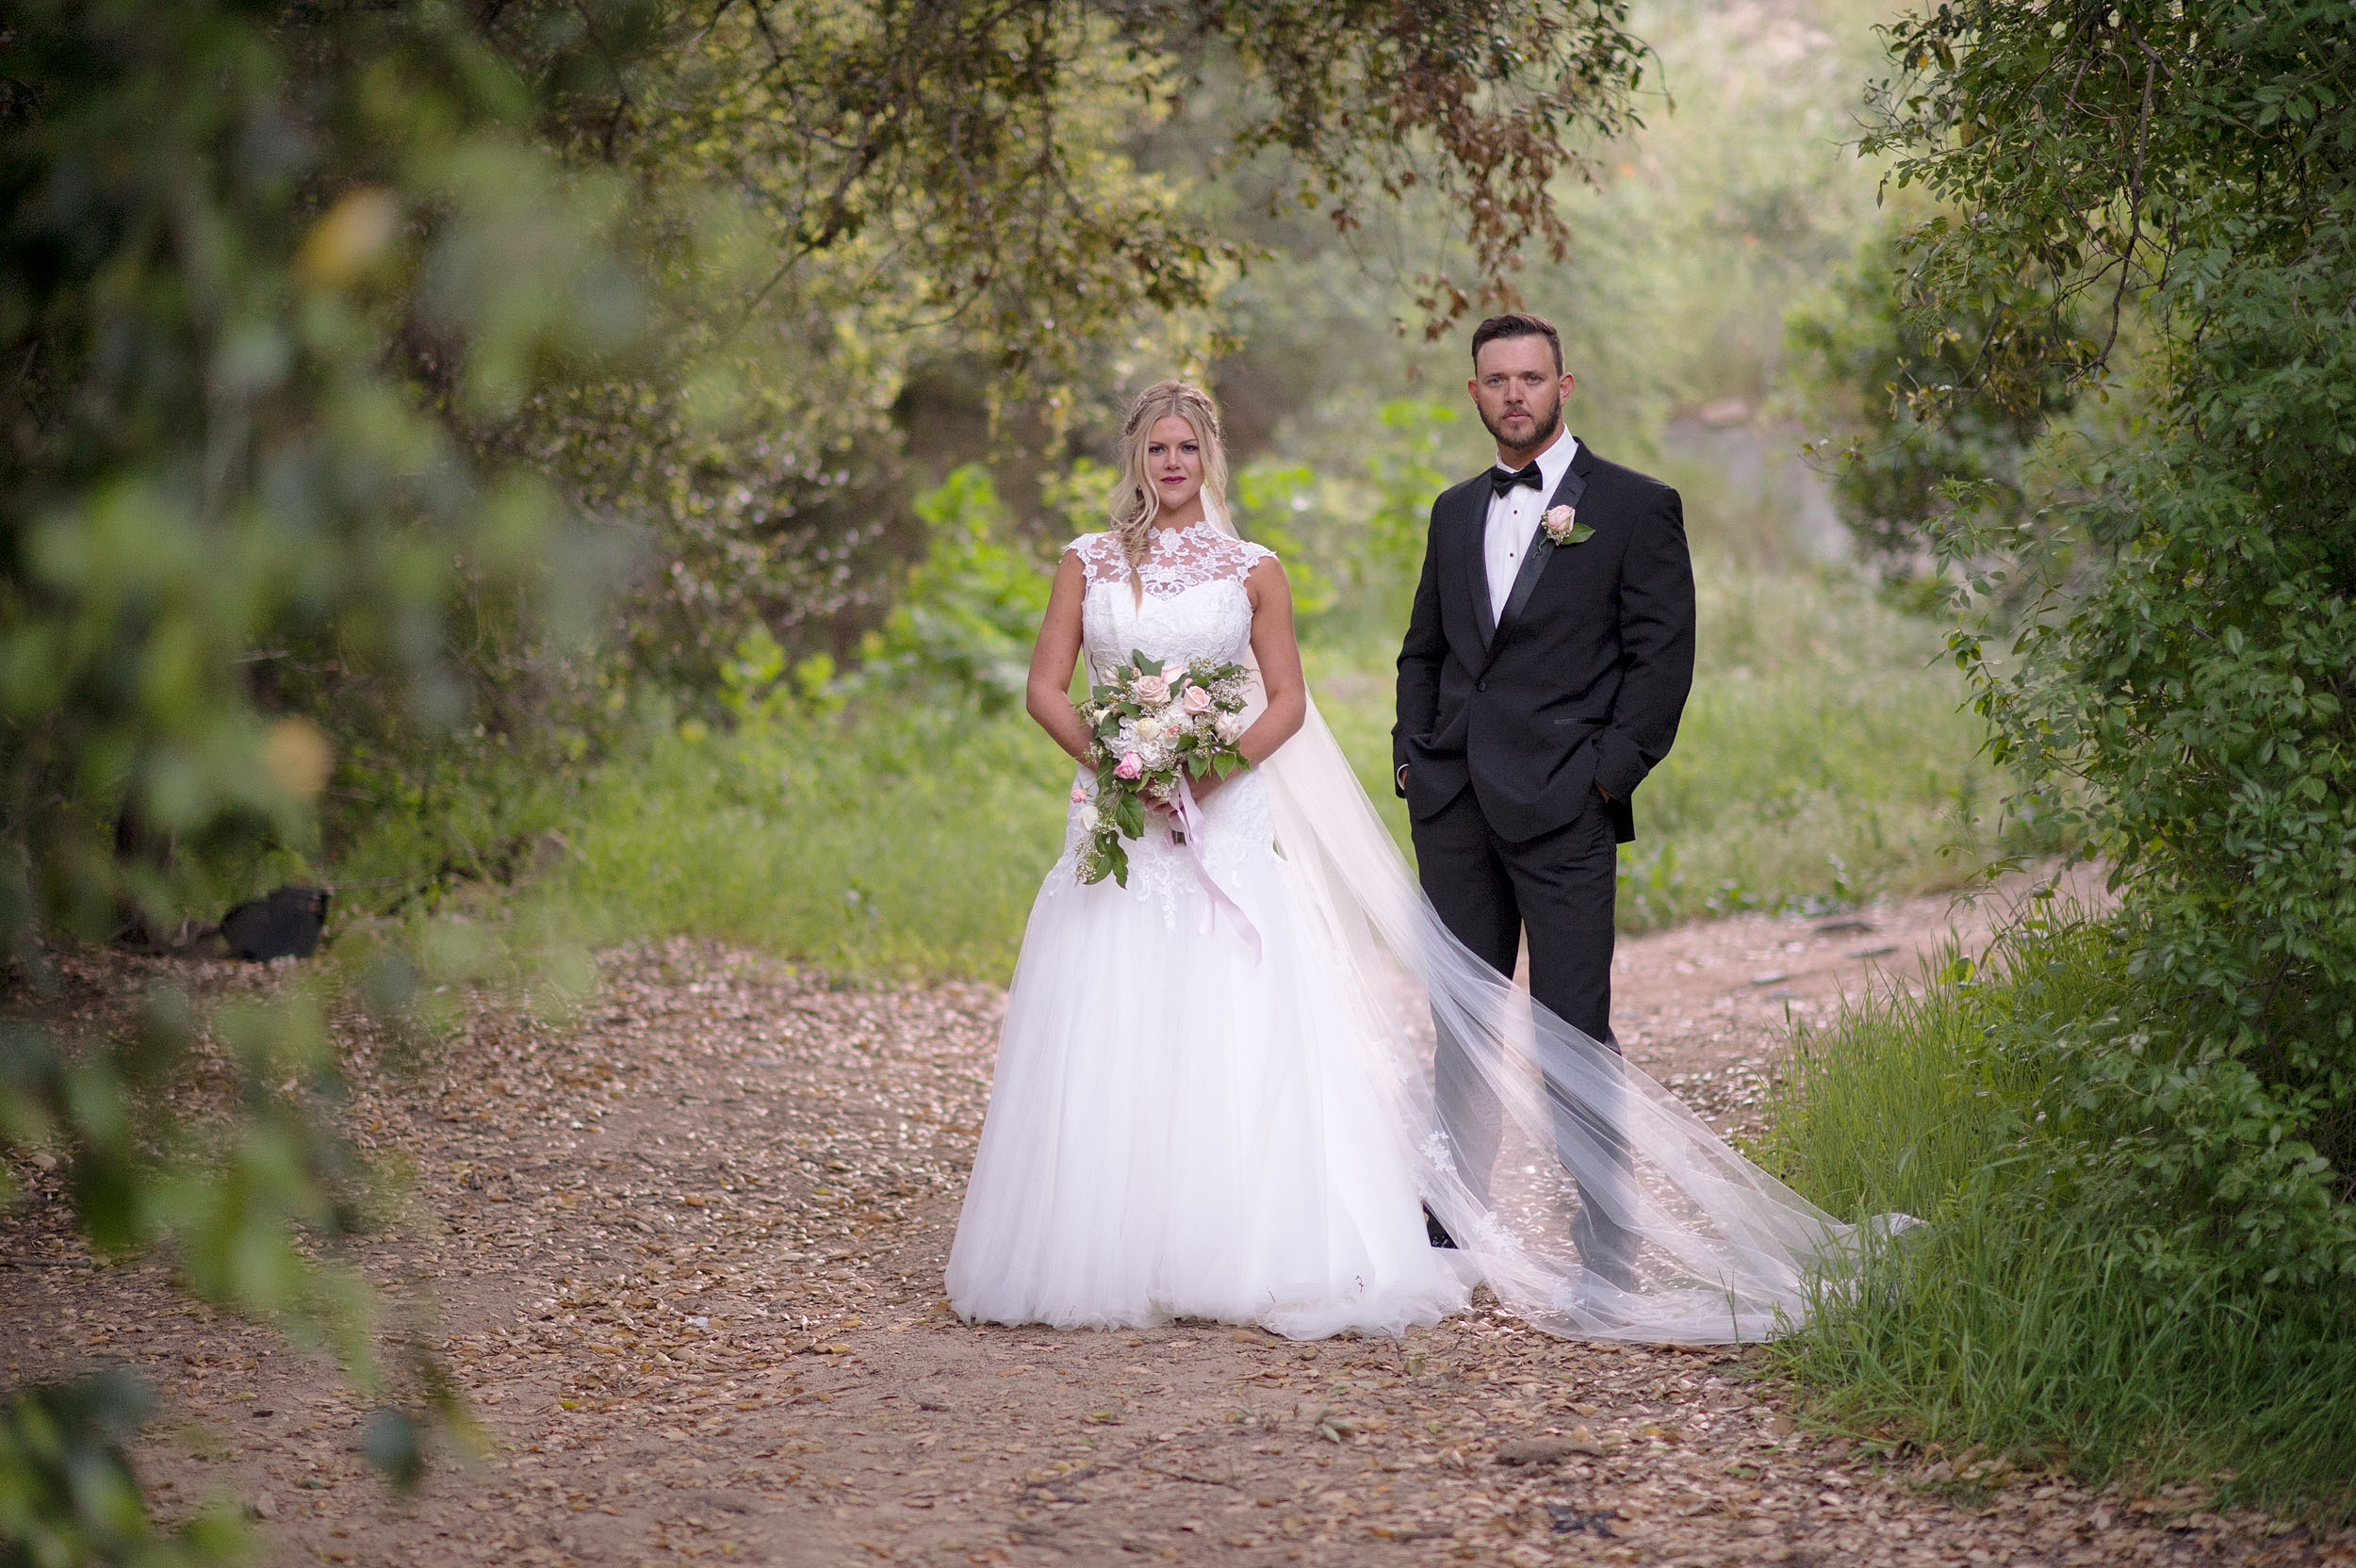 Bride and groom with bouquet at Temecula Creek Inn in Temecula.